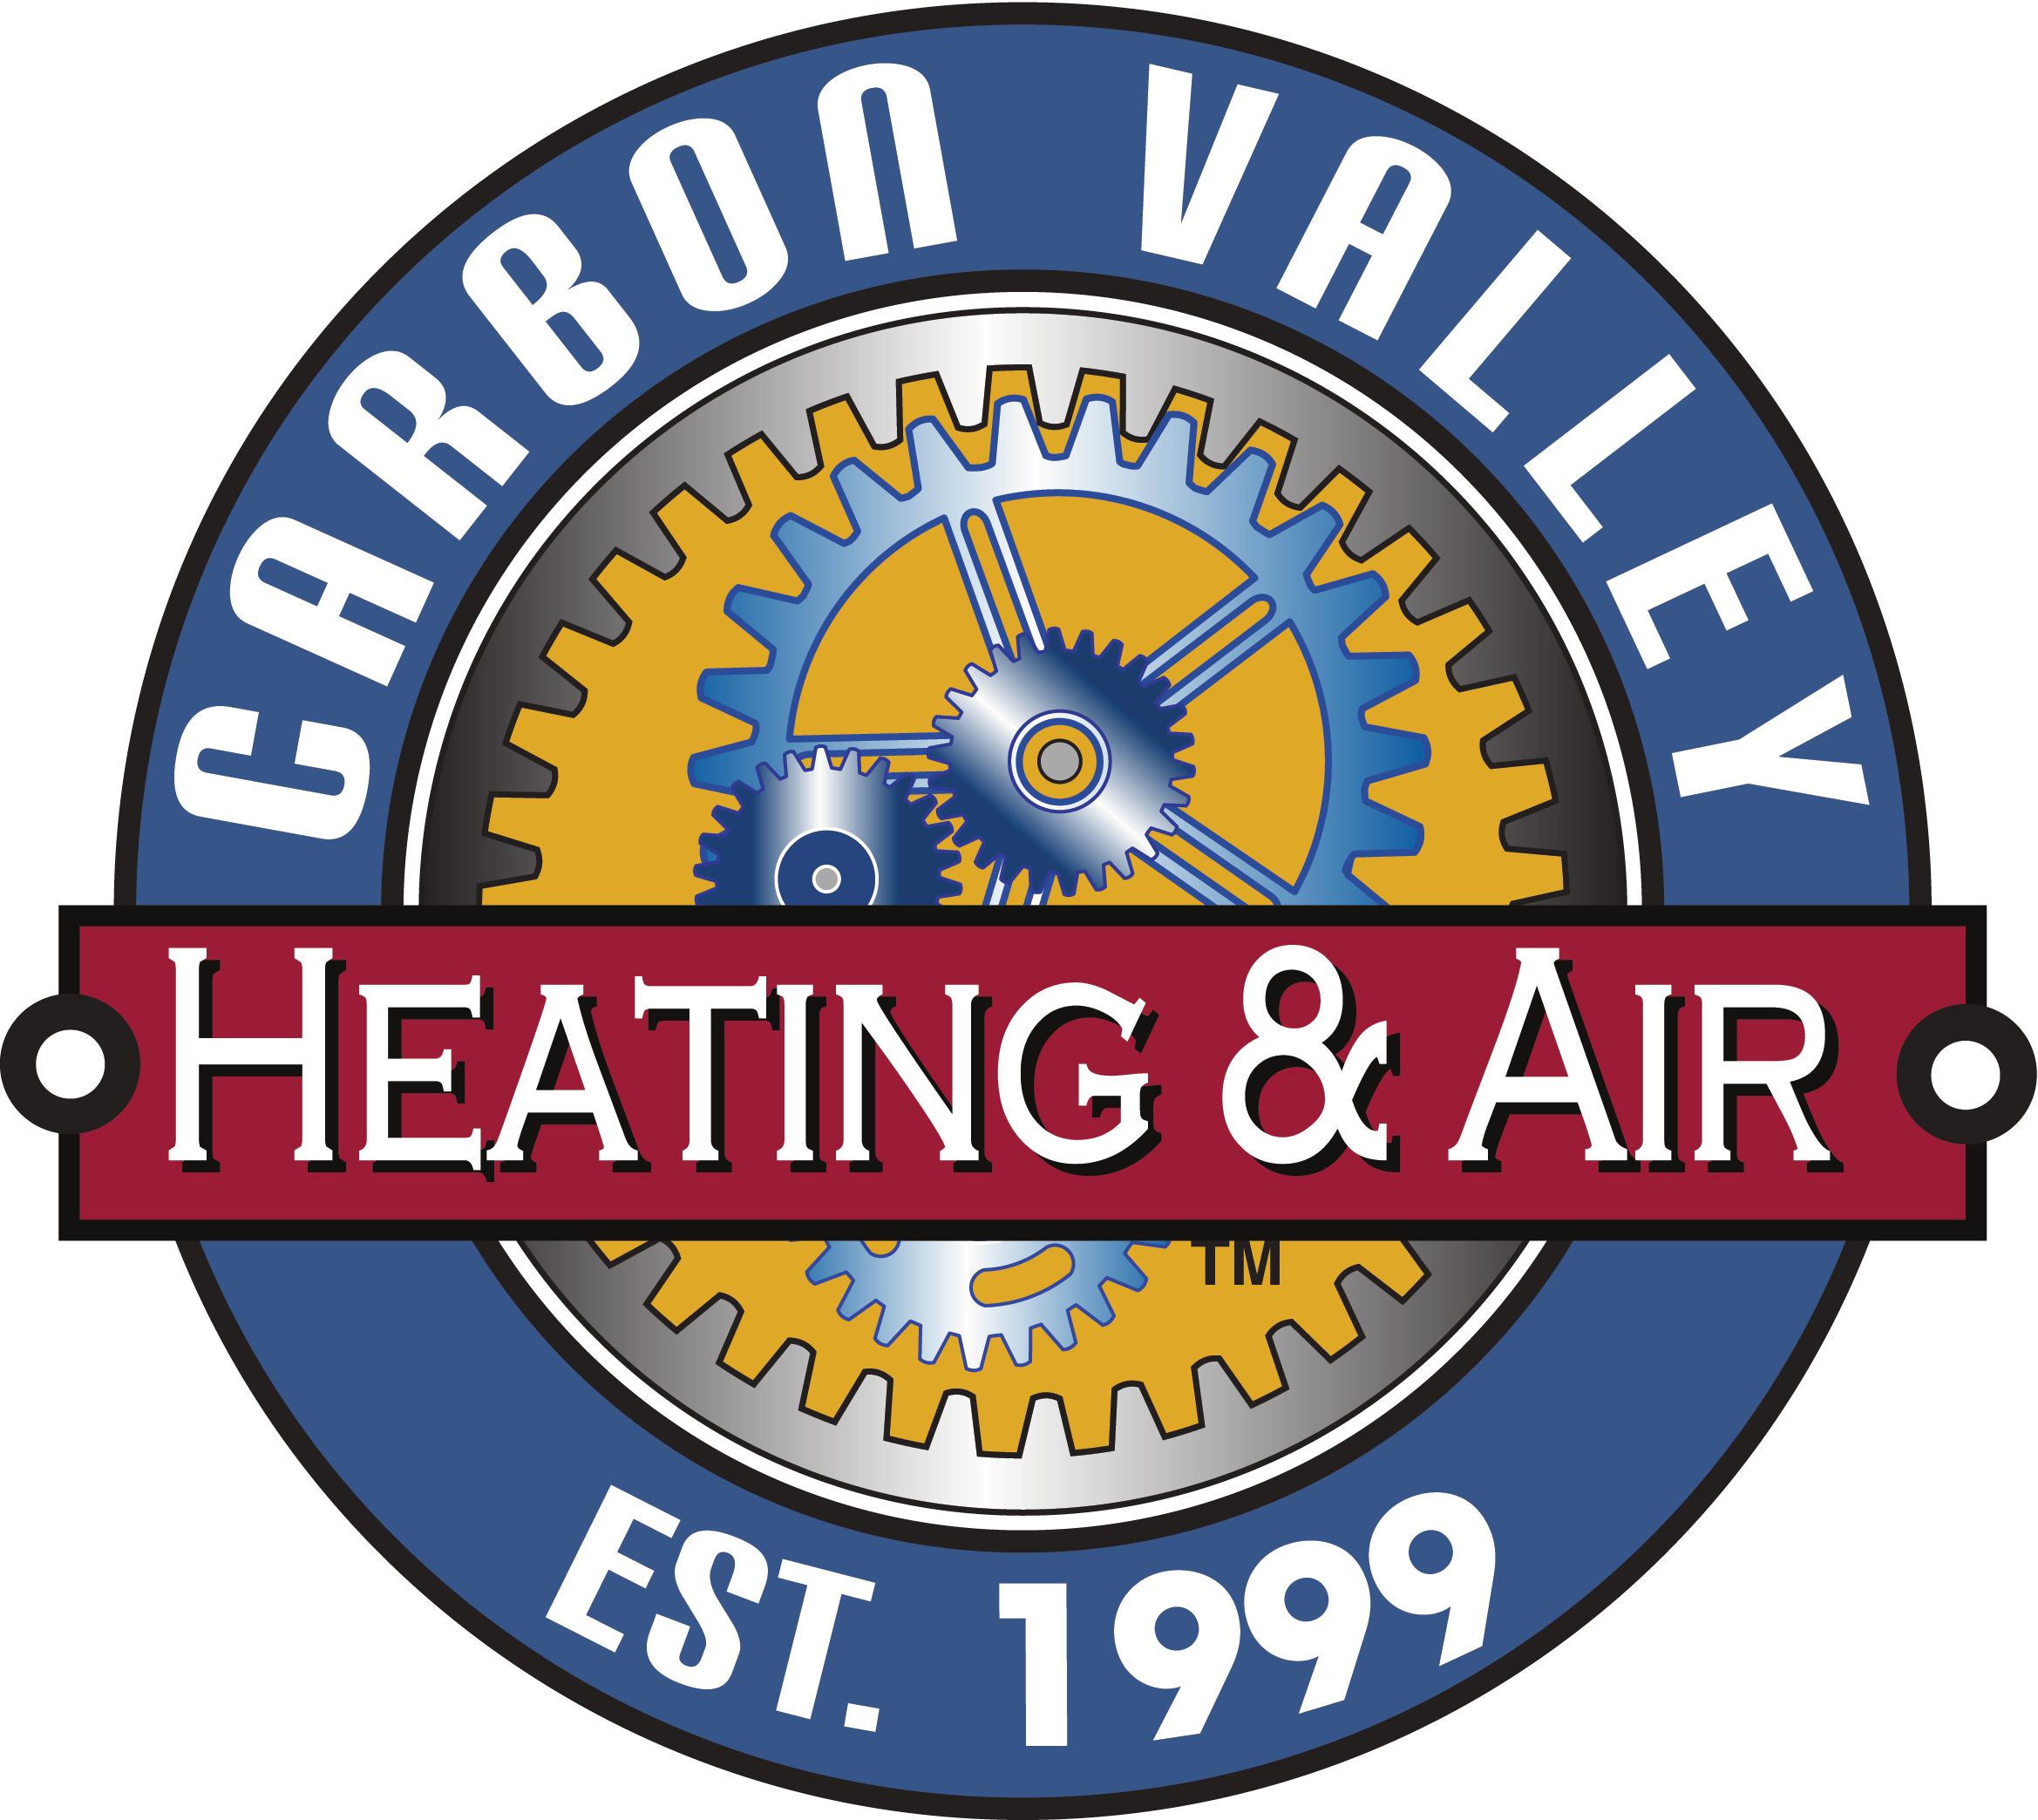 Carbon Valley Heating & Air